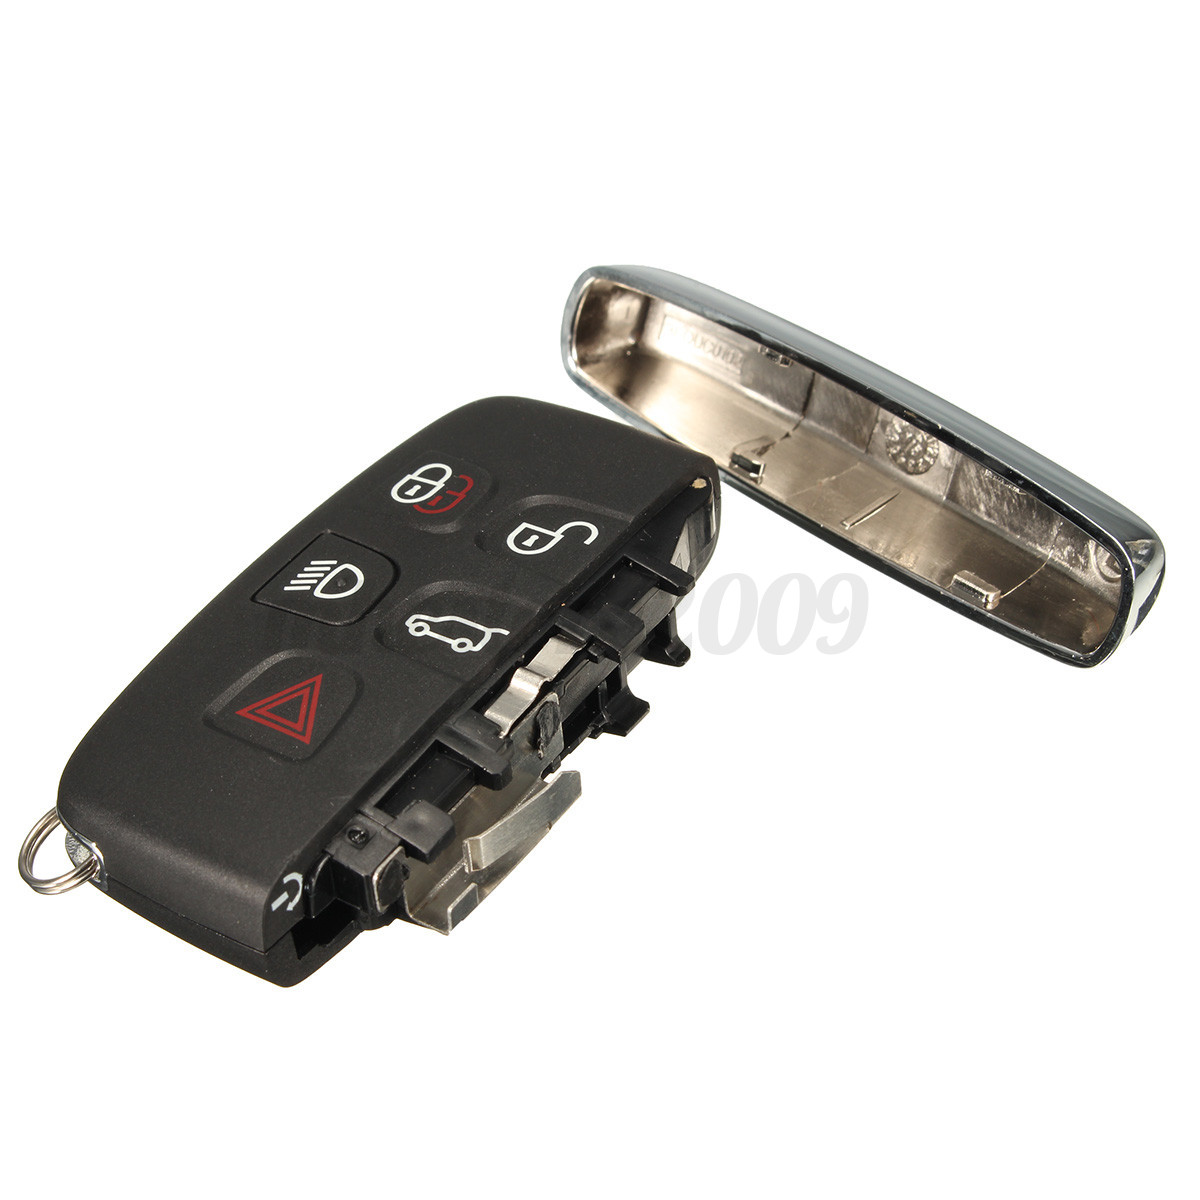 5 Buttons Remote Key Fob 434MHz W/ 7952 Chip For Land